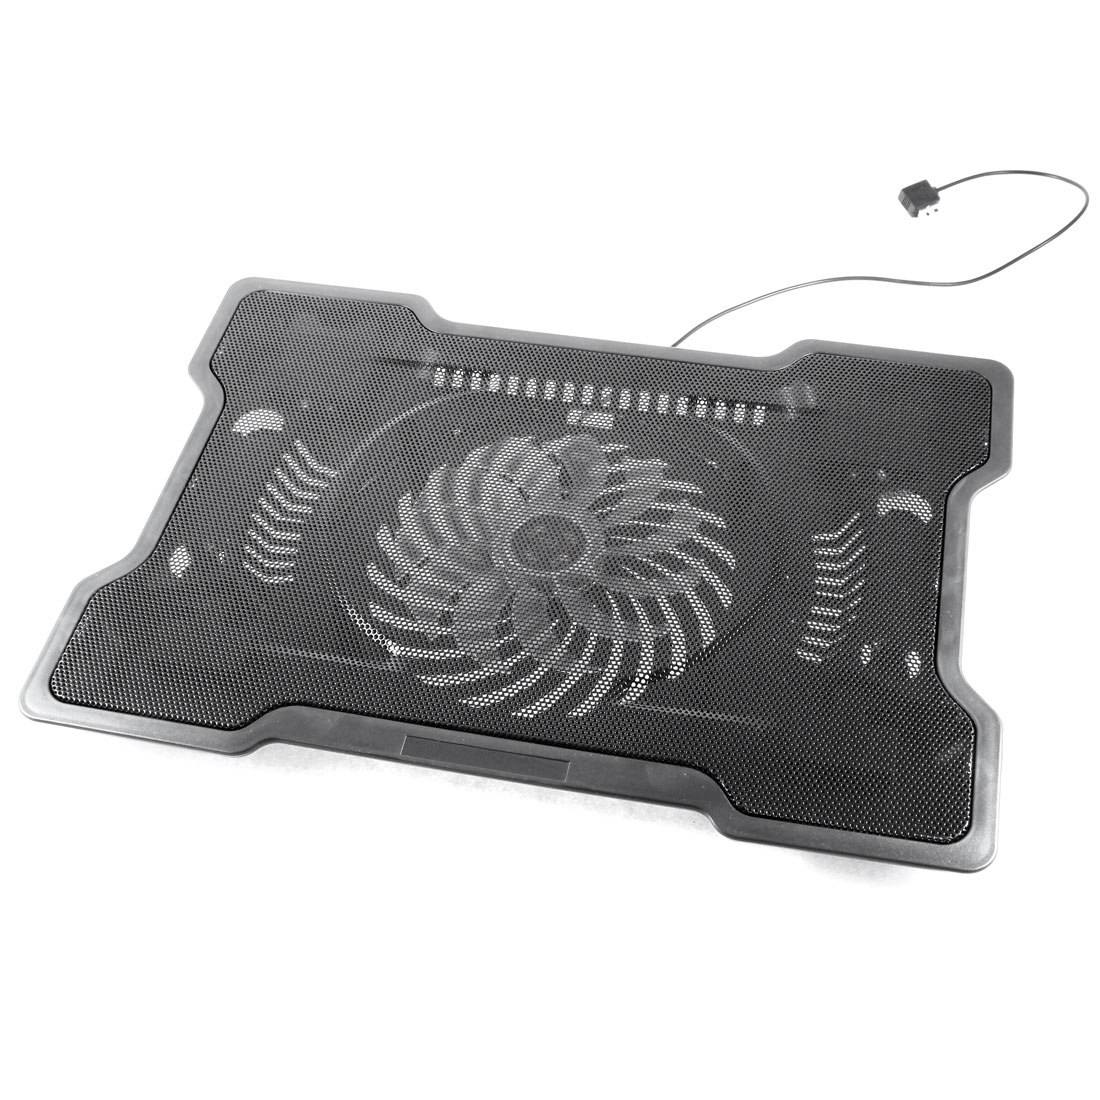 Laptop Notebook DC 5V Built-in Silent Cooling Fan USB Cooler Pad Black